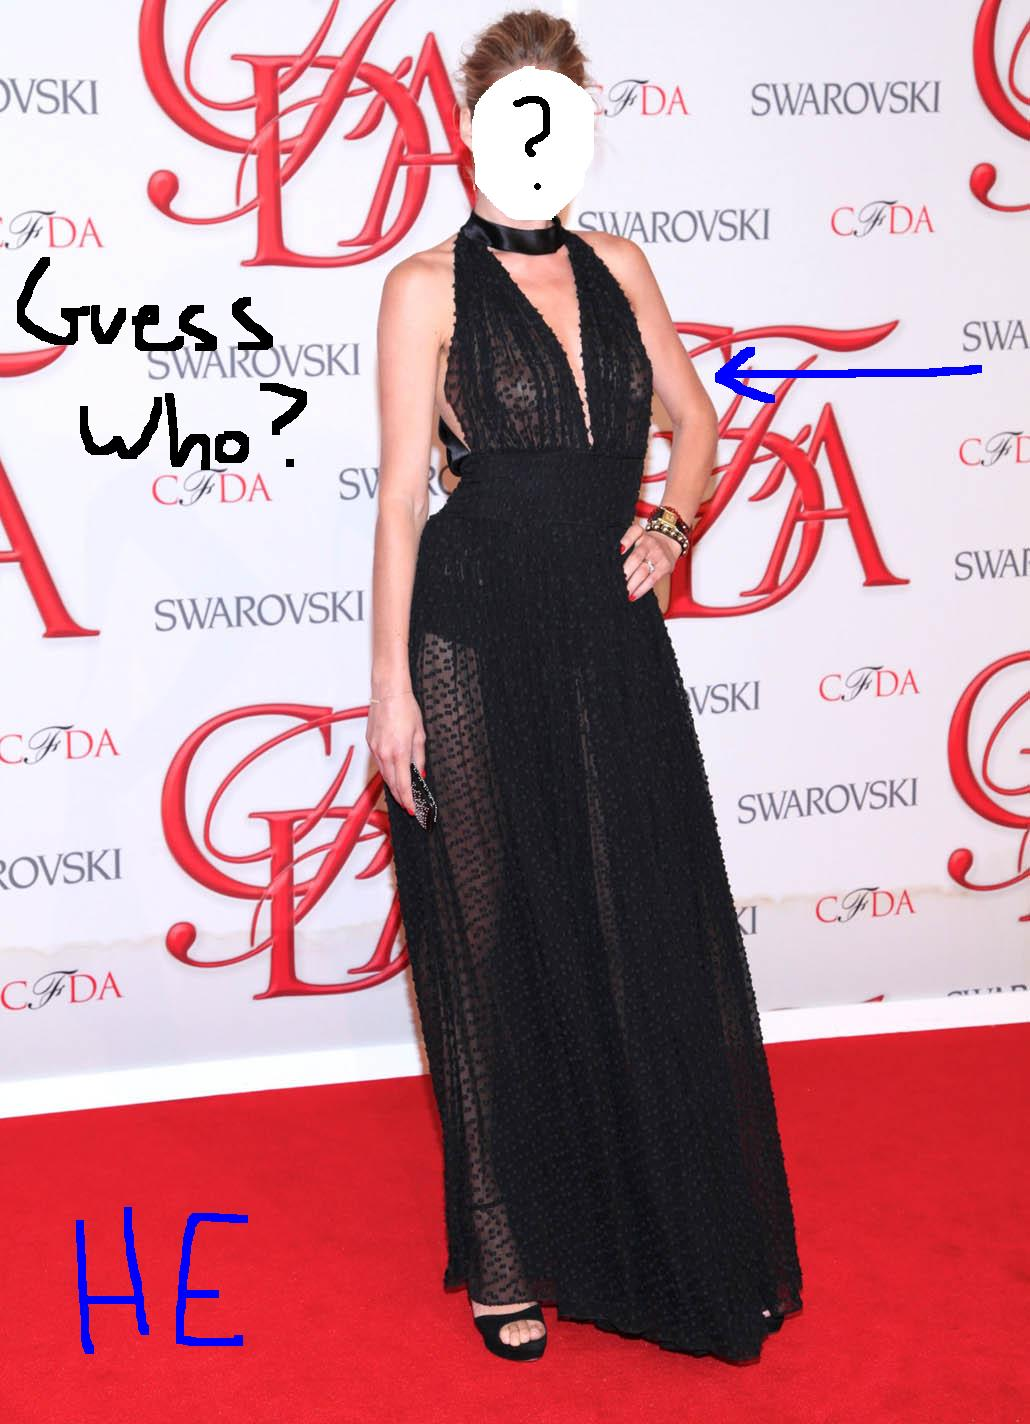 http://1.bp.blogspot.com/-TAsbQqVcxfw/T89vXaLb5iI/AAAAAAAAODE/kvoldA4JwWo/s1600/guess+that+celebrity+style+Doutzen+Kroes+see+through+black+dress+at+cfda+awards+fashion+byhe.JPG